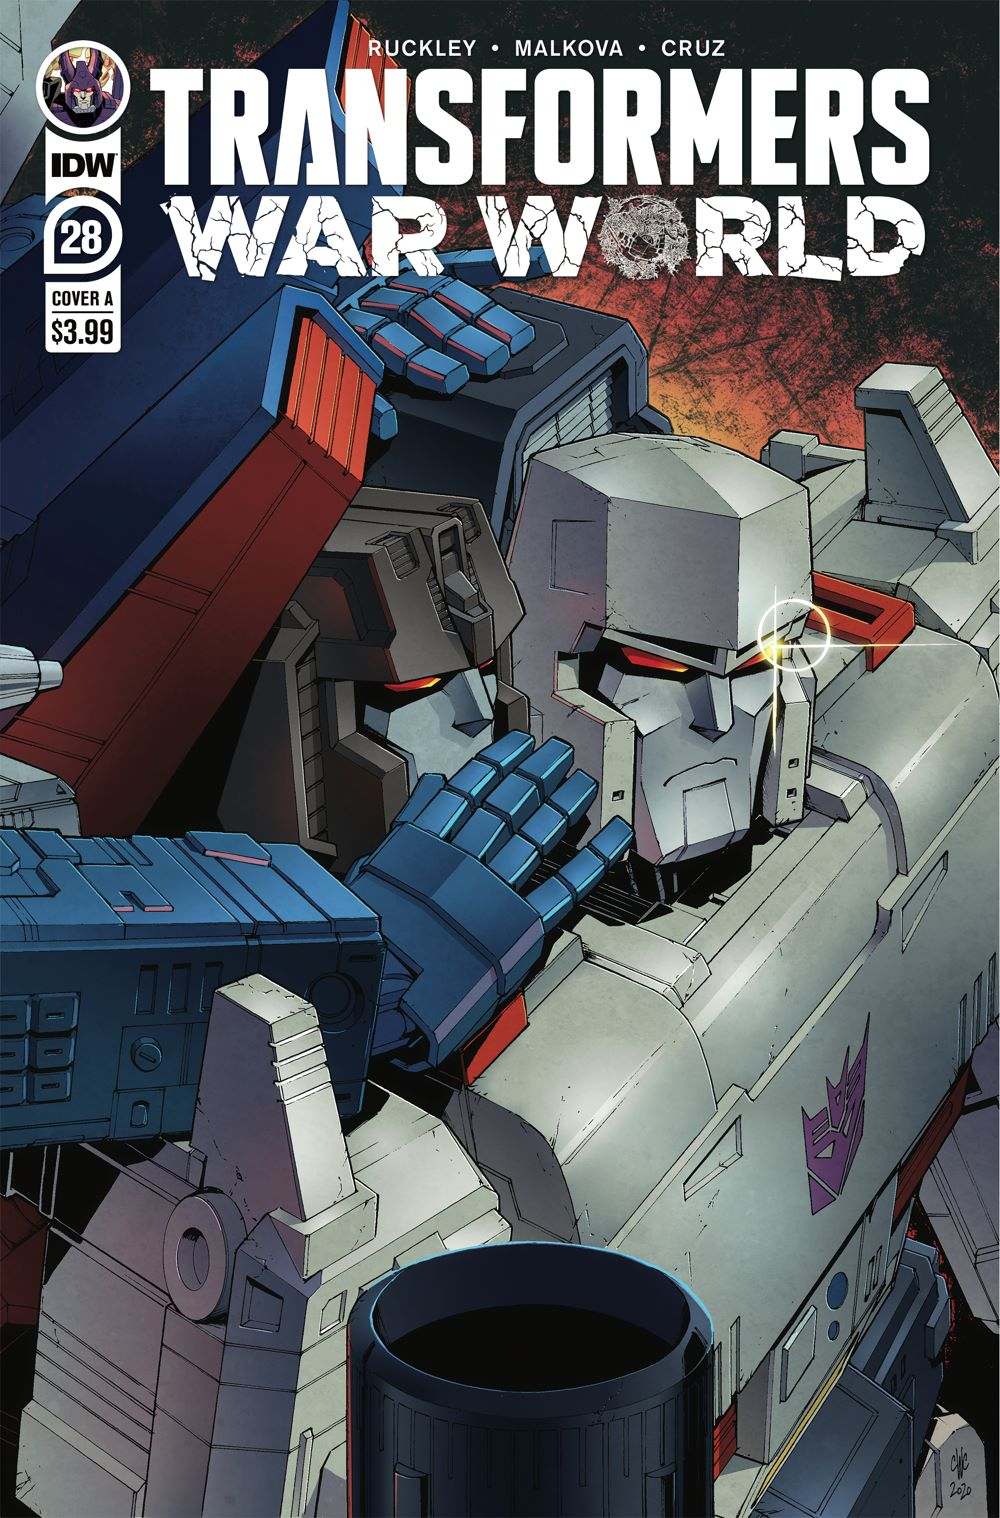 TF28-cvr-A ComicList: IDW Publishing New Releases for 03/31/2021